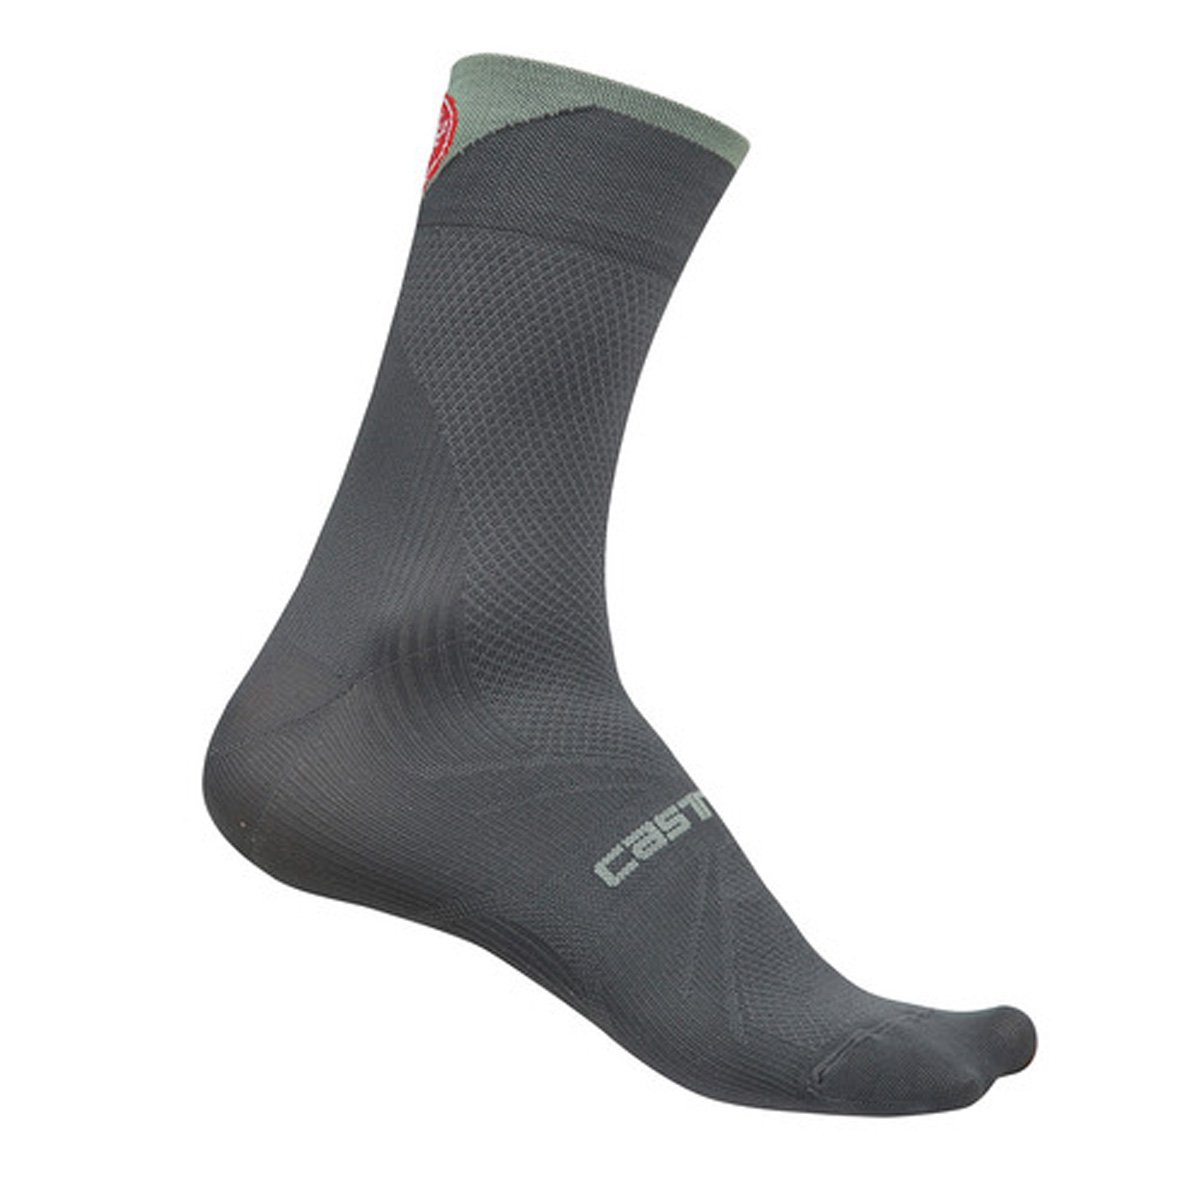 Castelli 2018 Maestro 12 Cycling Sock R18023